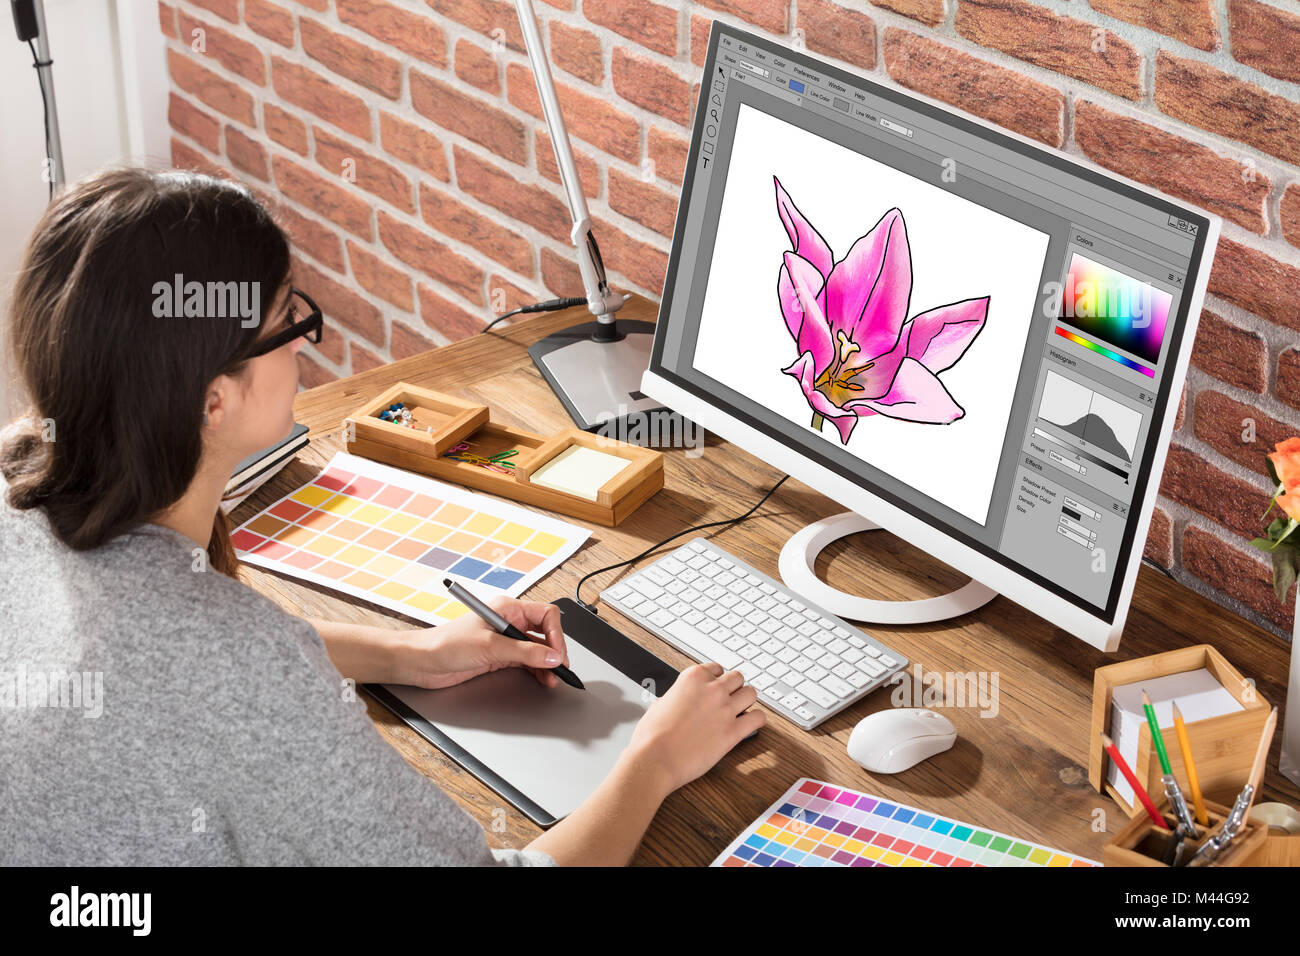 High angle view of female designer drawing flower on computer using graphic tablet in office - Stock Image